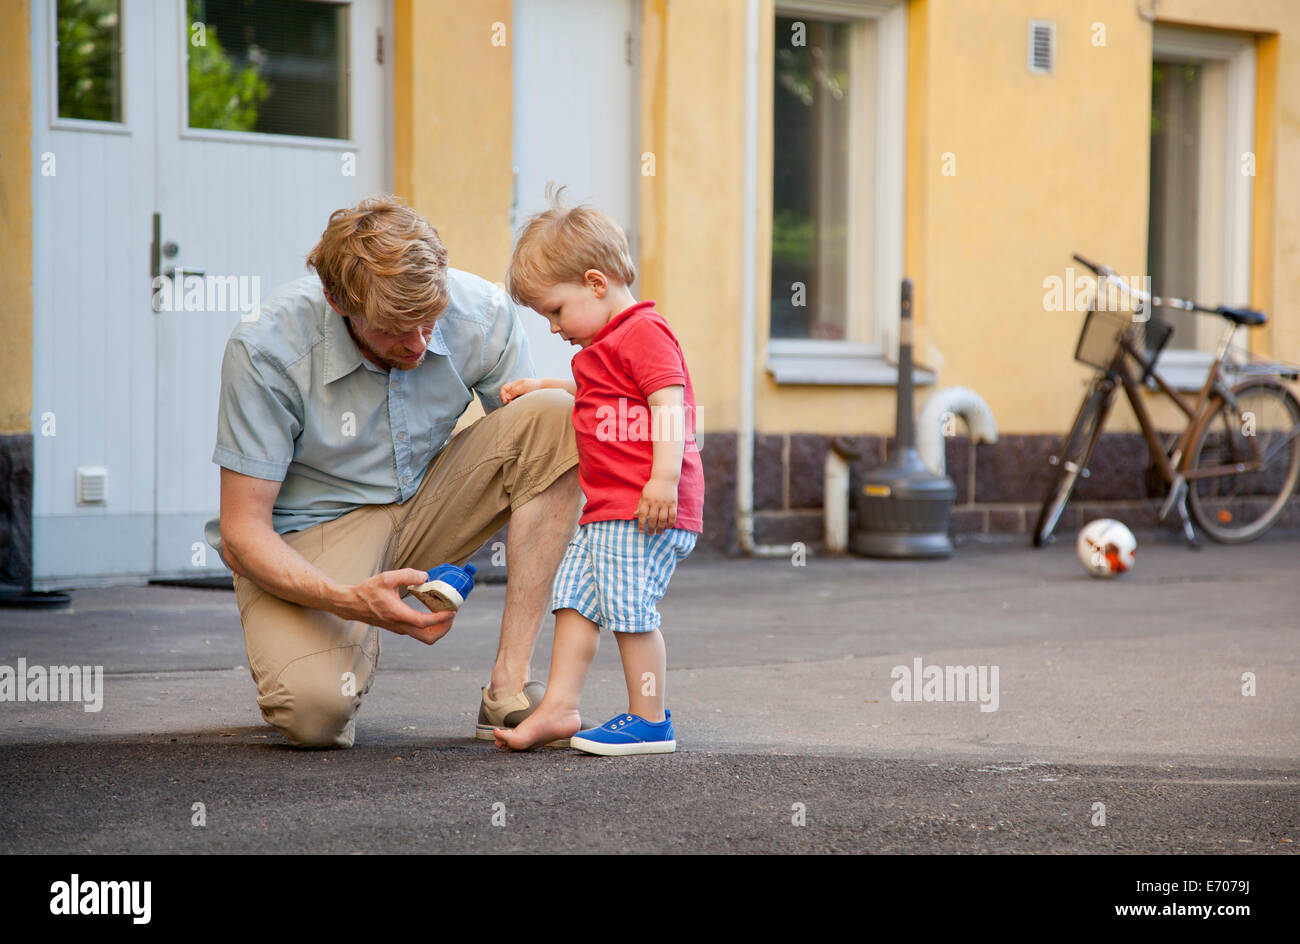 Father giving toddler son a hand to put on trainer in garden - Stock Image